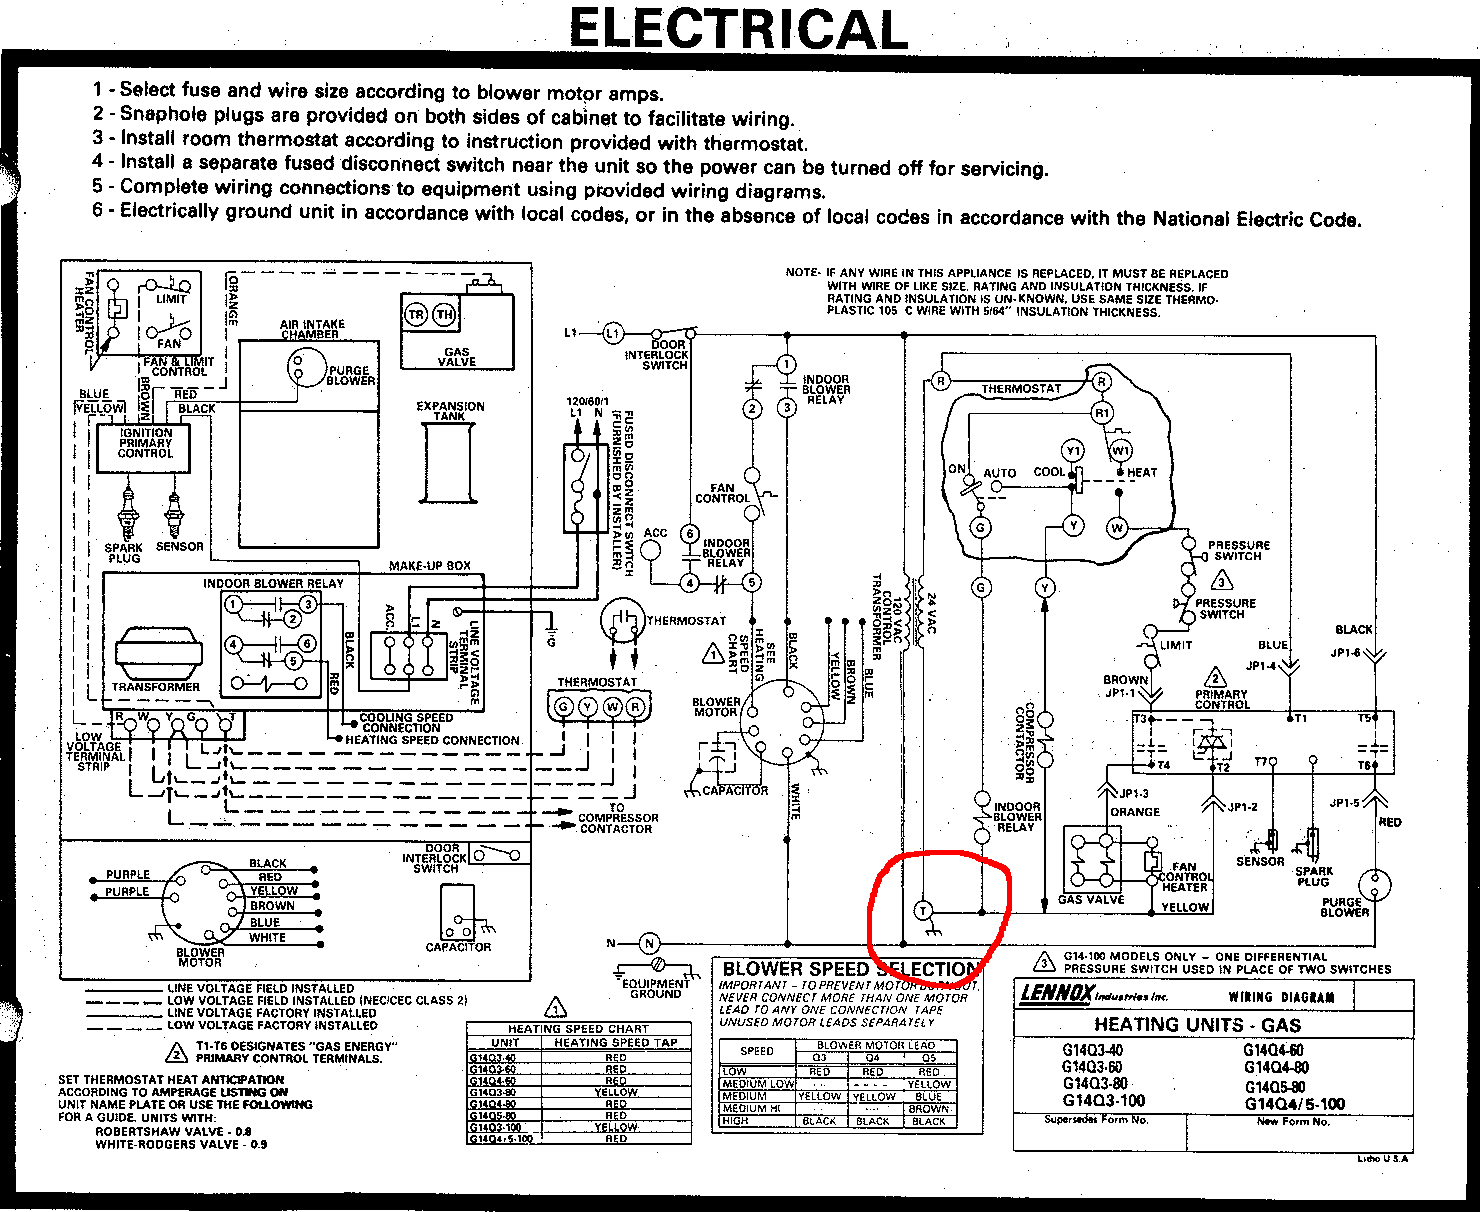 Can I Use The T Terminal In My Furnace As The C For A Wifi - Honeywell Thermostat Wiring Diagram 3 Wire